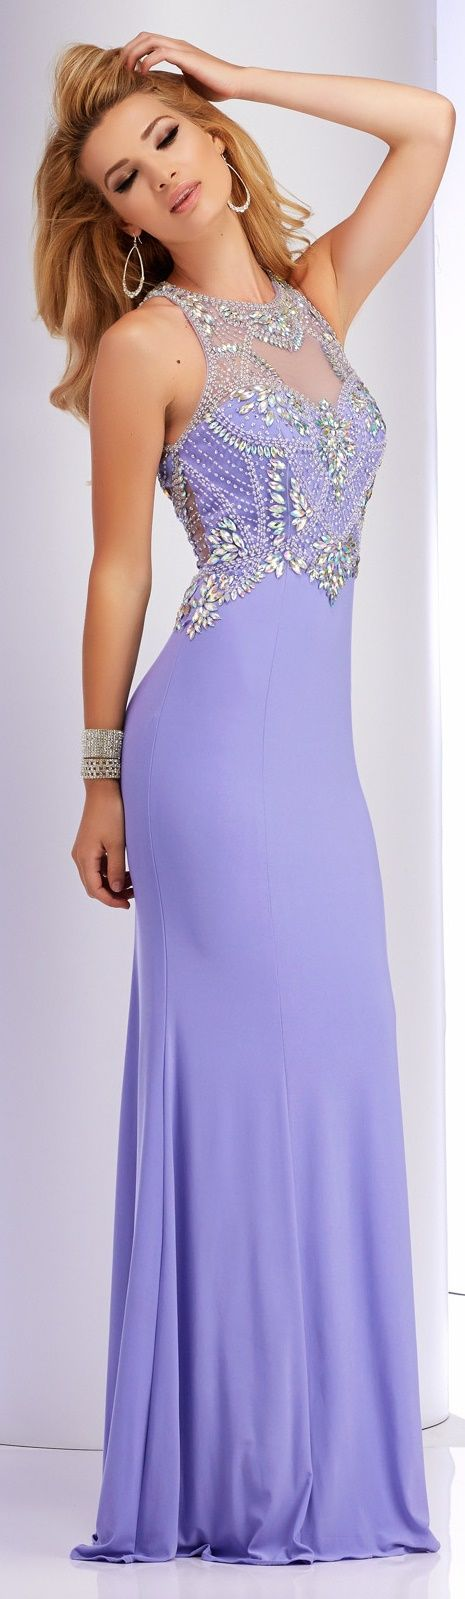 Clarisse Prom Dress 2796 Prom Homecoming And Prom Ideas